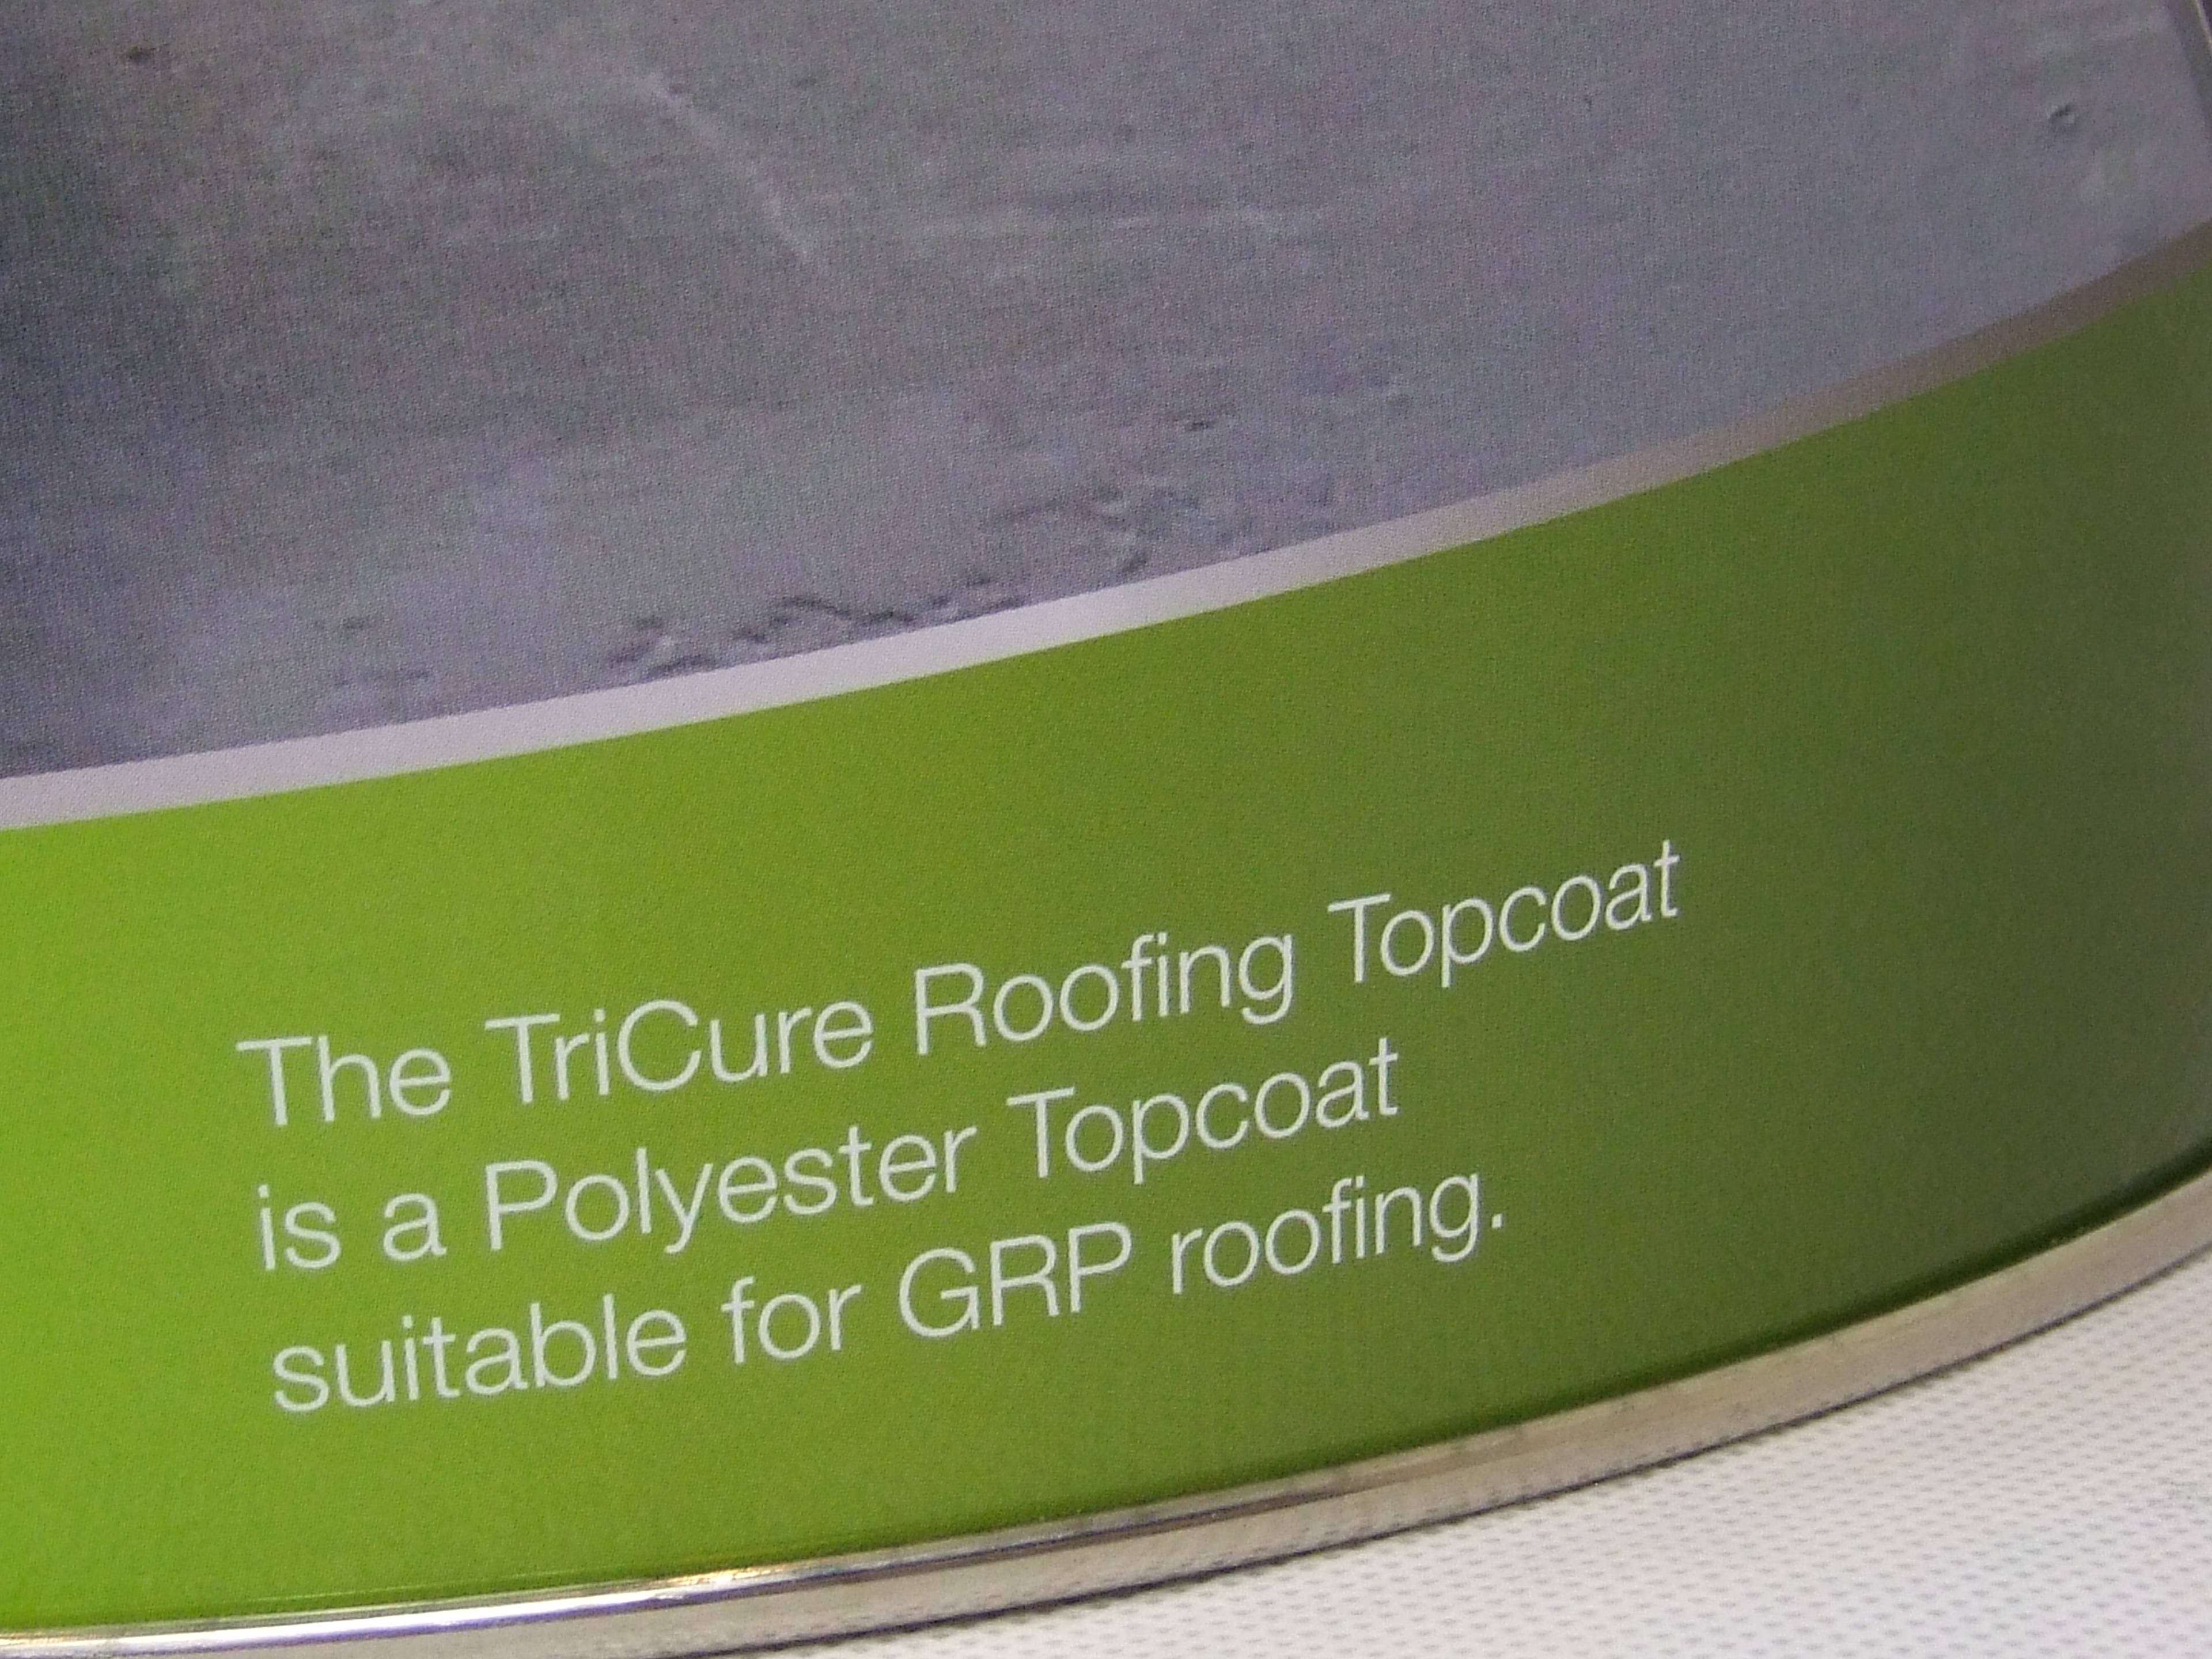 Tricure Roofing Topcoat